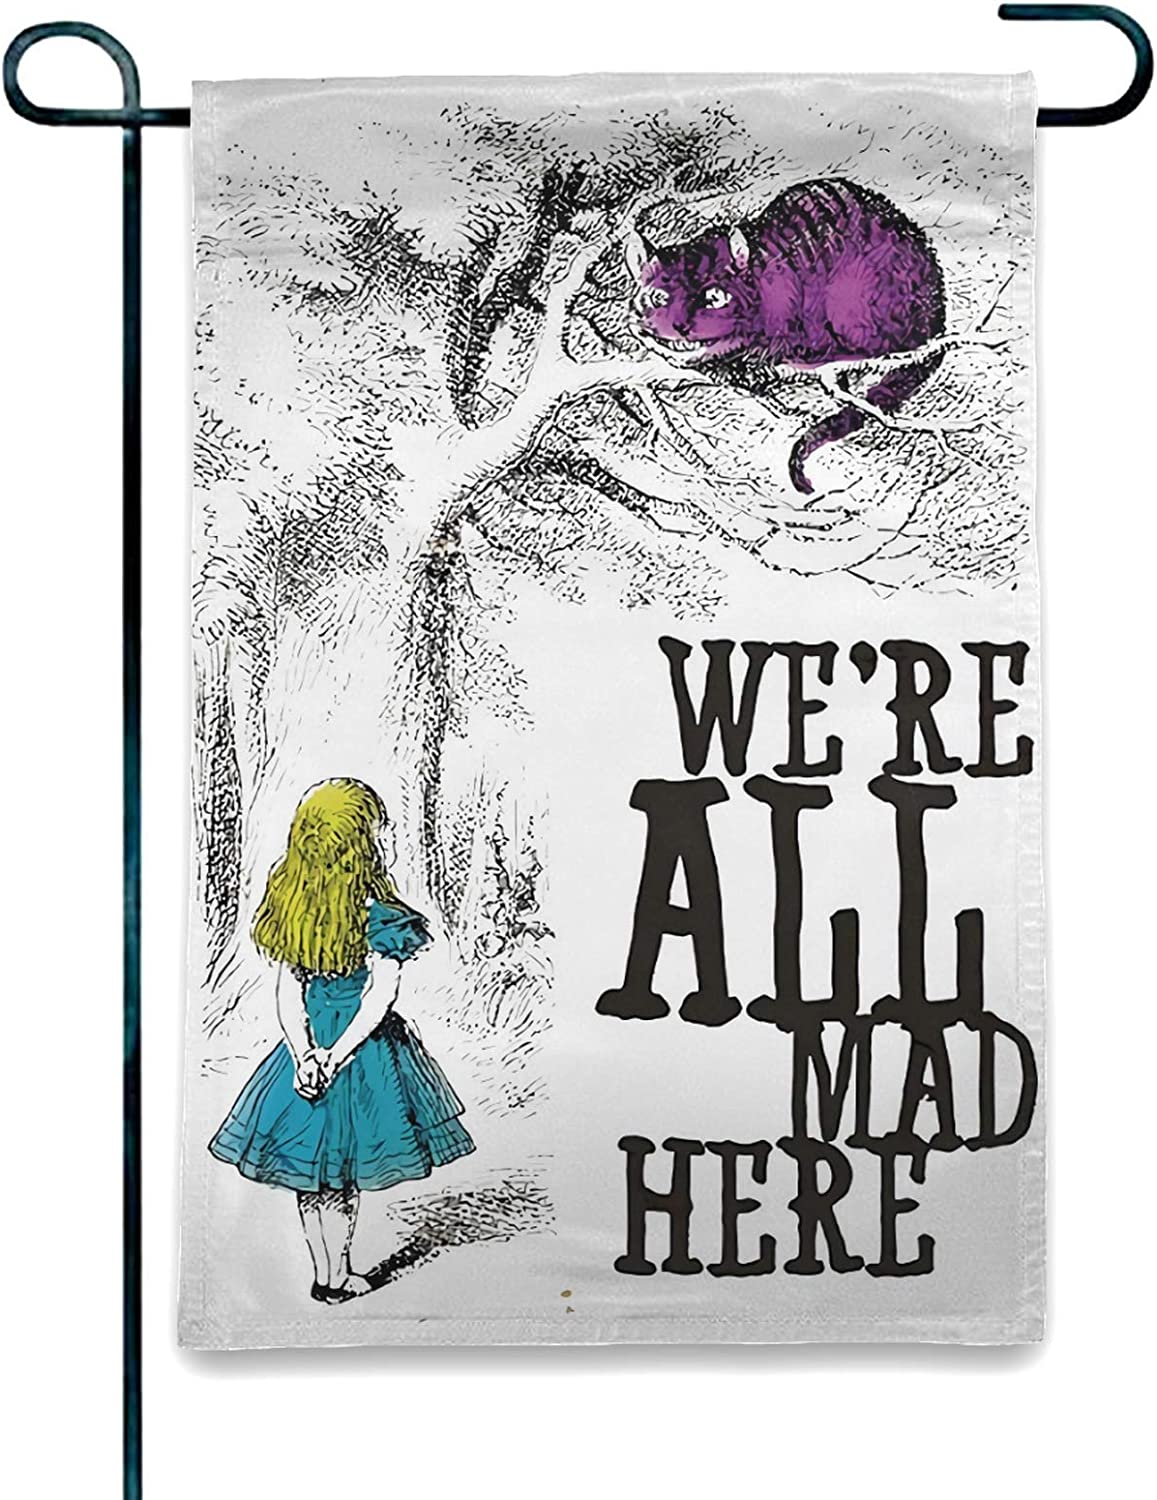 OAbear Alice in Wonderland Flag We Re All Mad Here Garden Flag Double Sided Garden Yard Decorations Flag 12.5 X 18 Inch